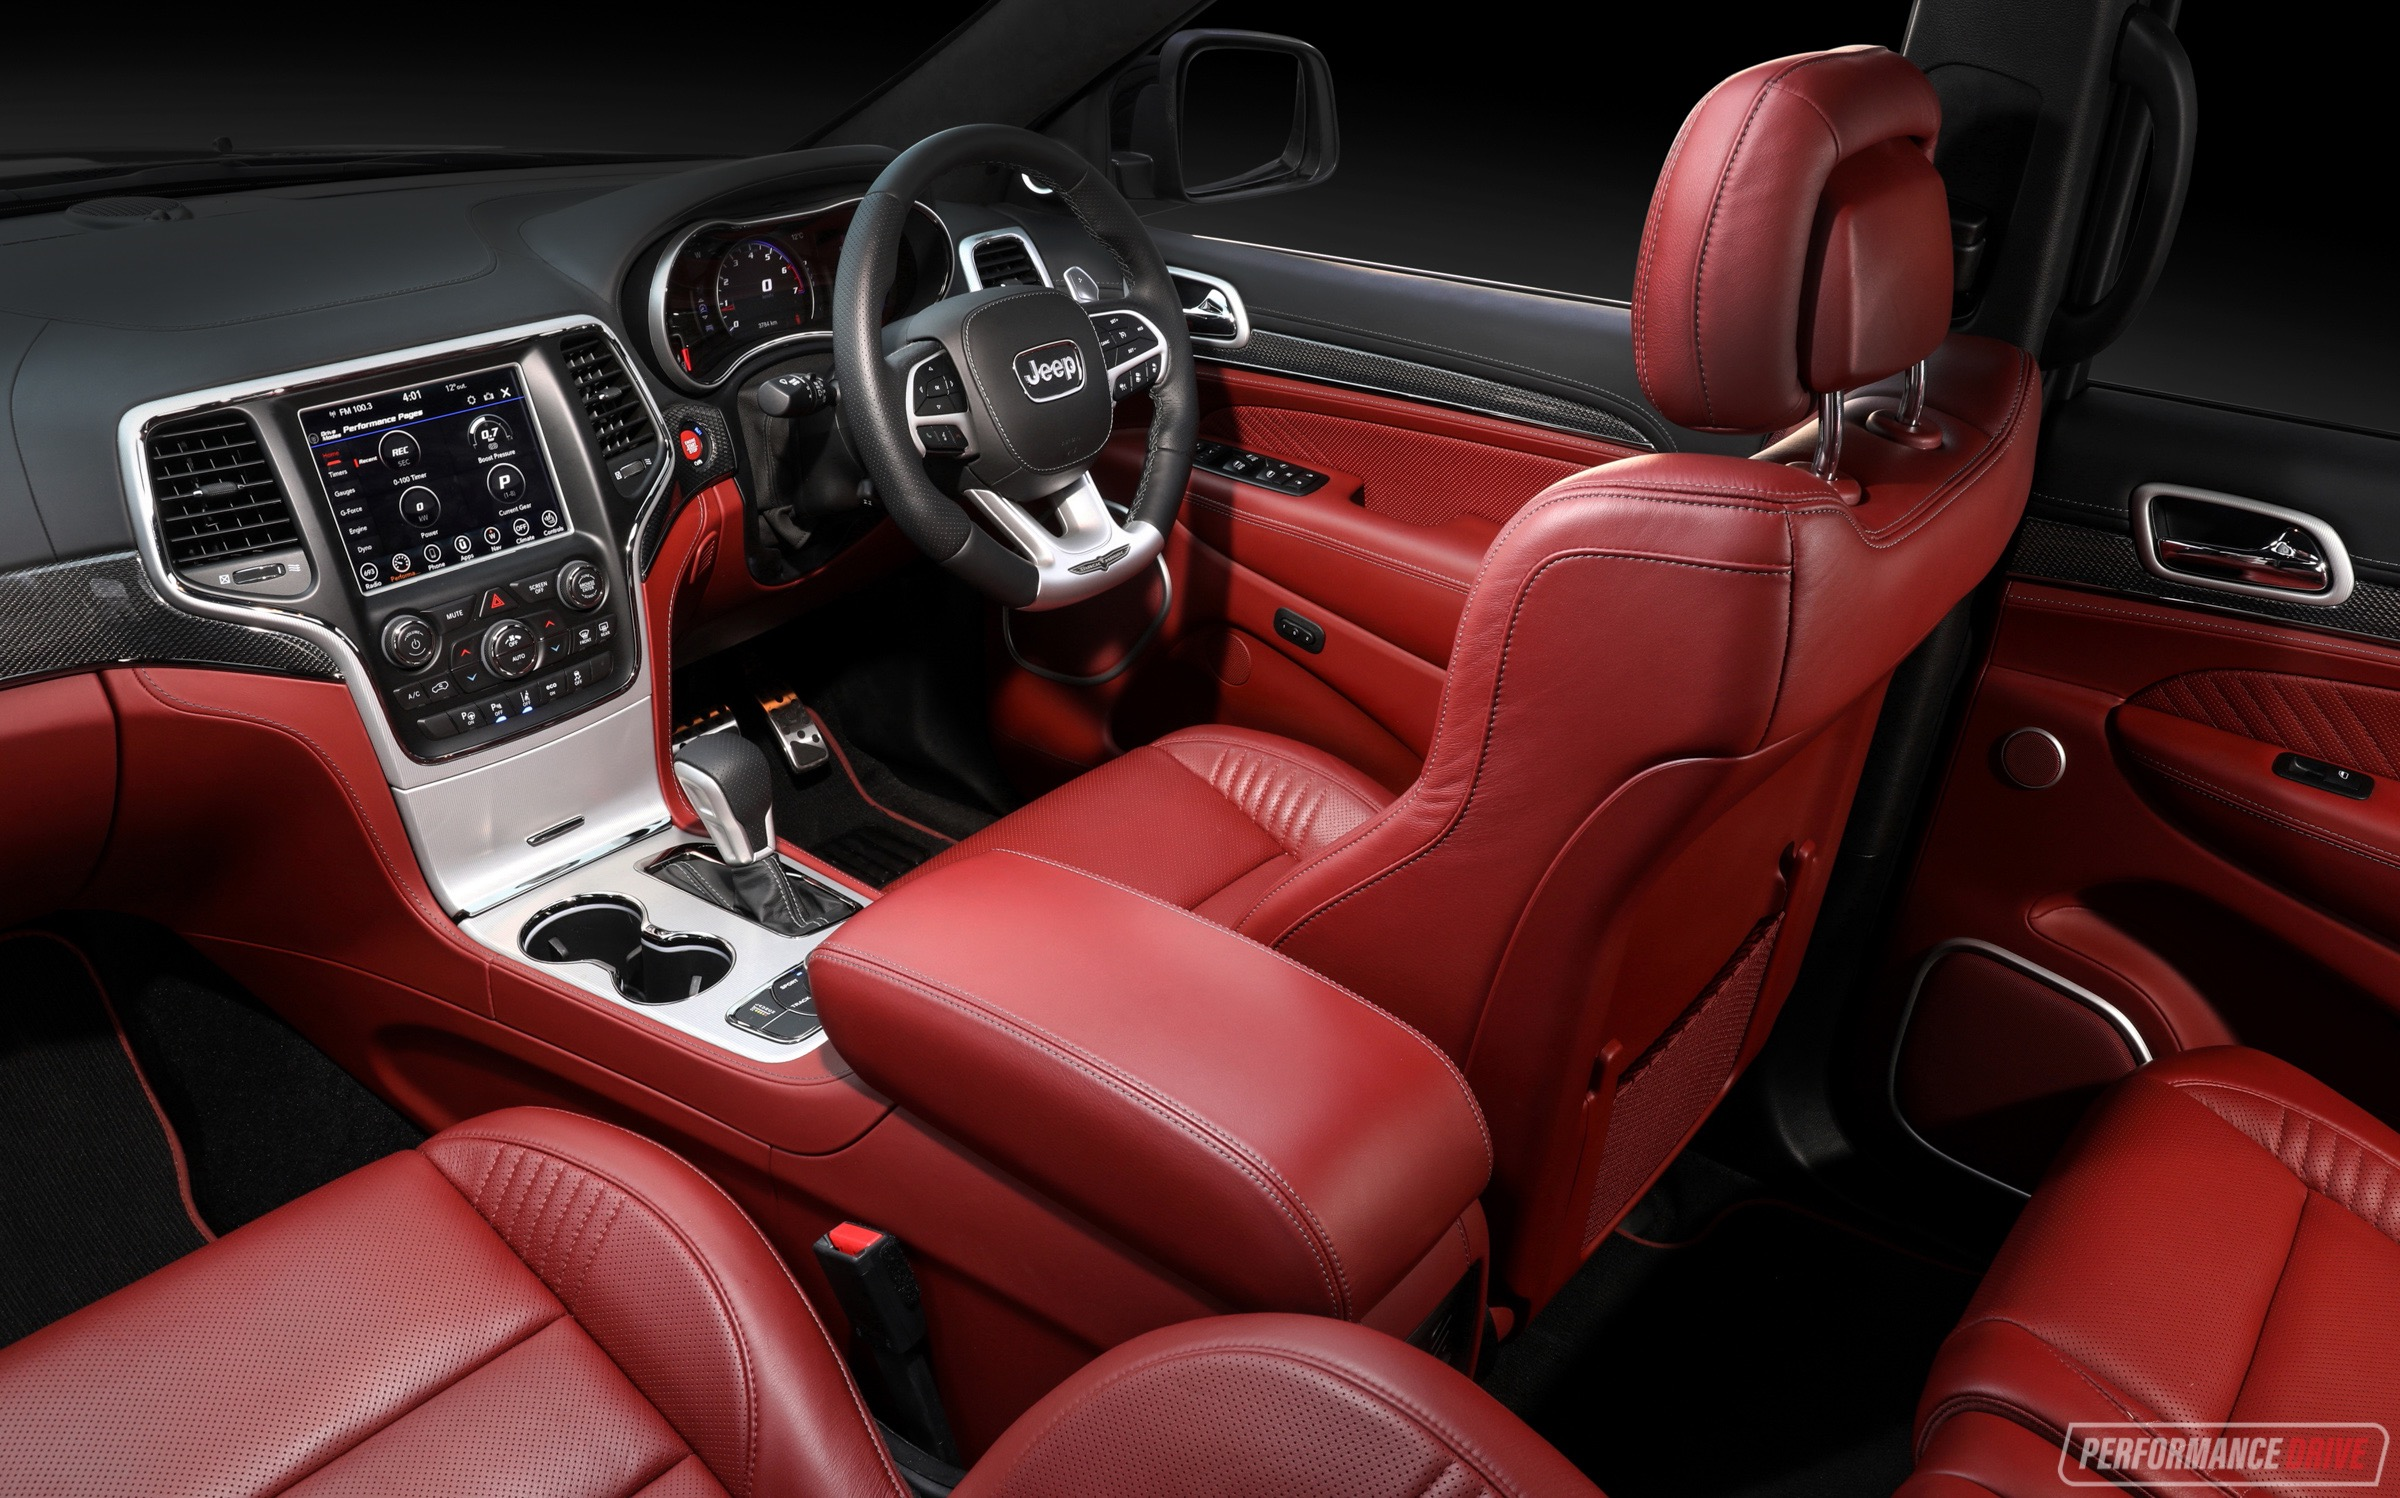 jeep cherokee grand trackhawk interior launch australian suv drive nz power performancedrive powerful know things most come